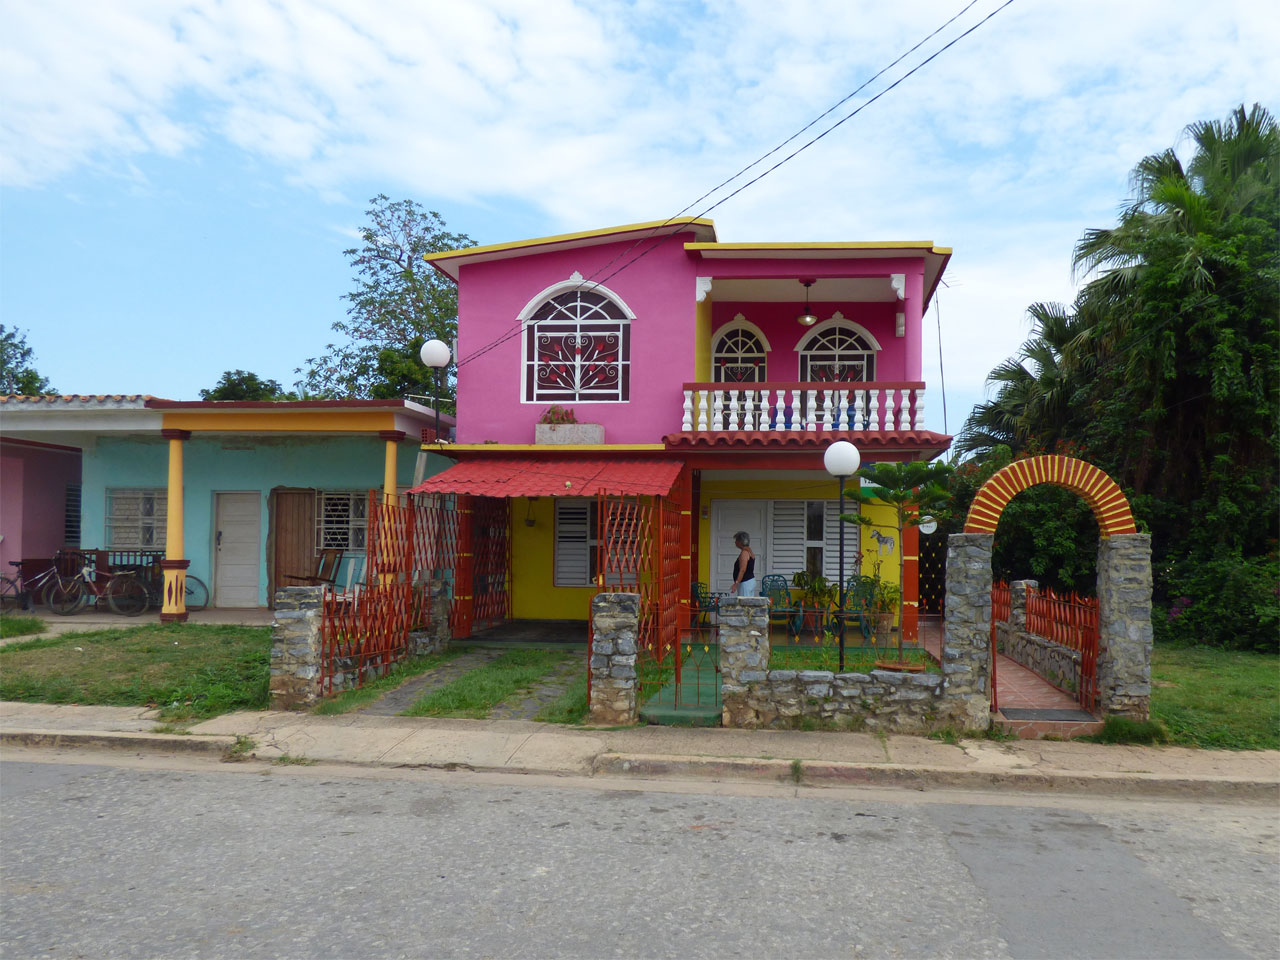 Colourful casas in Viñales, Cuba